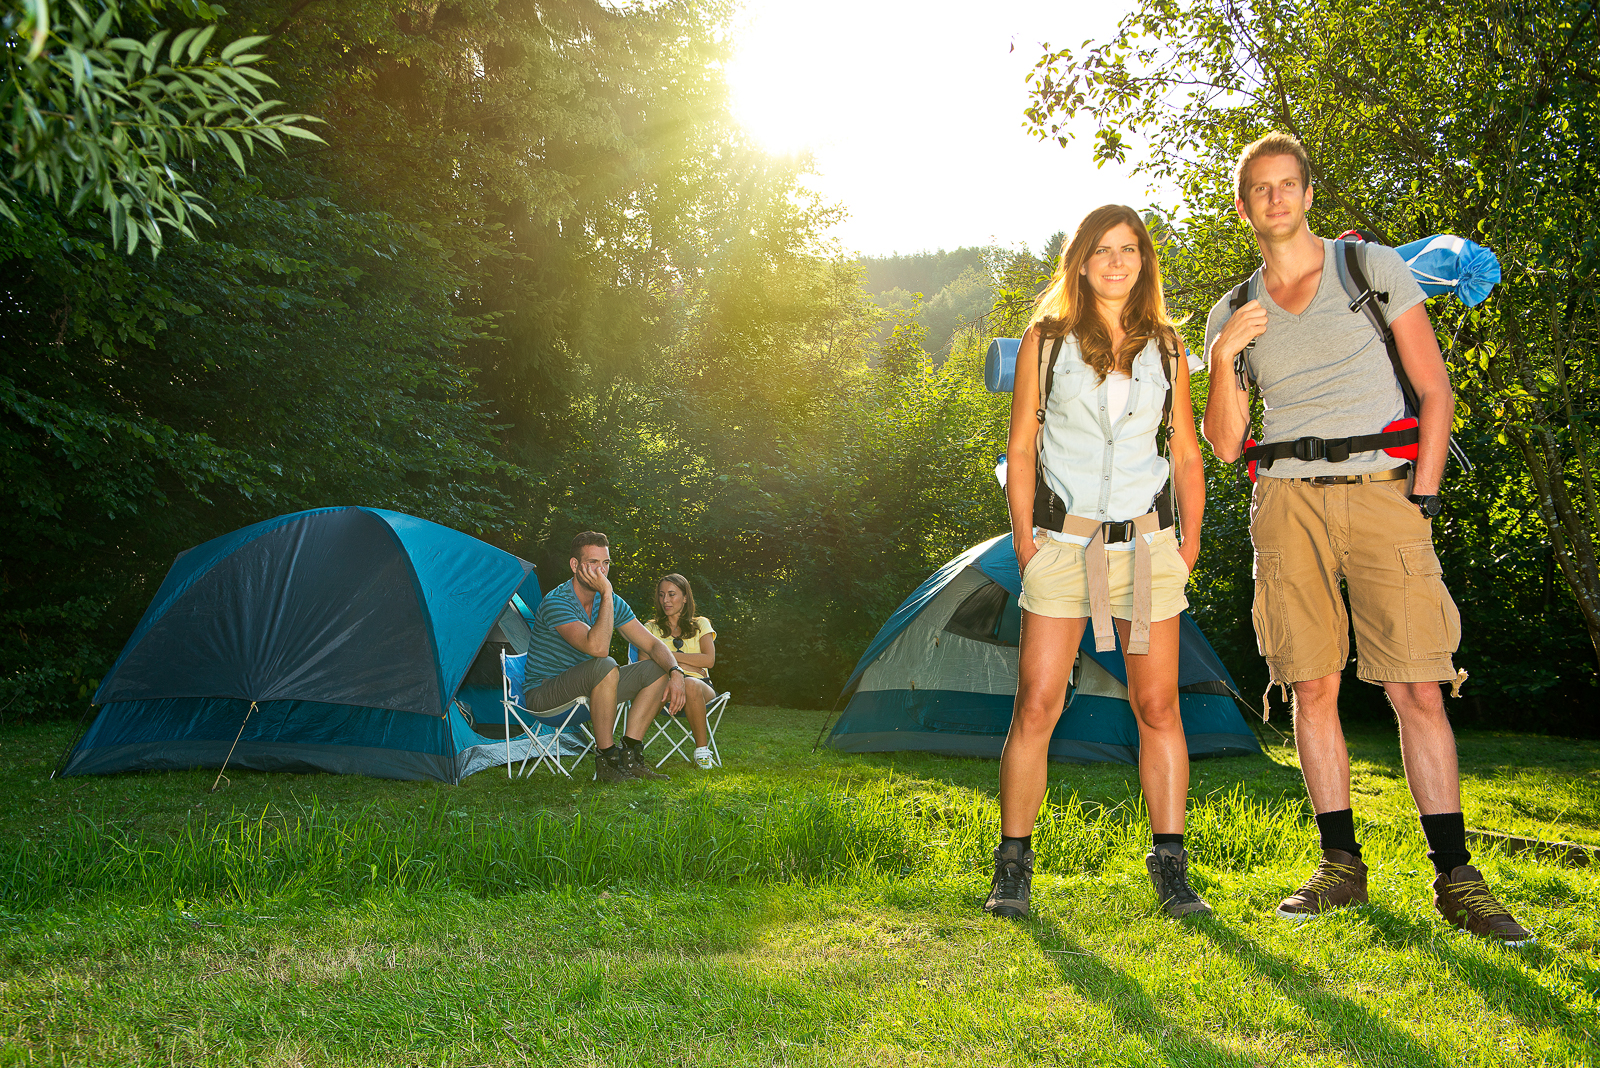 Young, attractive couple posing in front of two tents on a camp site, wearing back packs